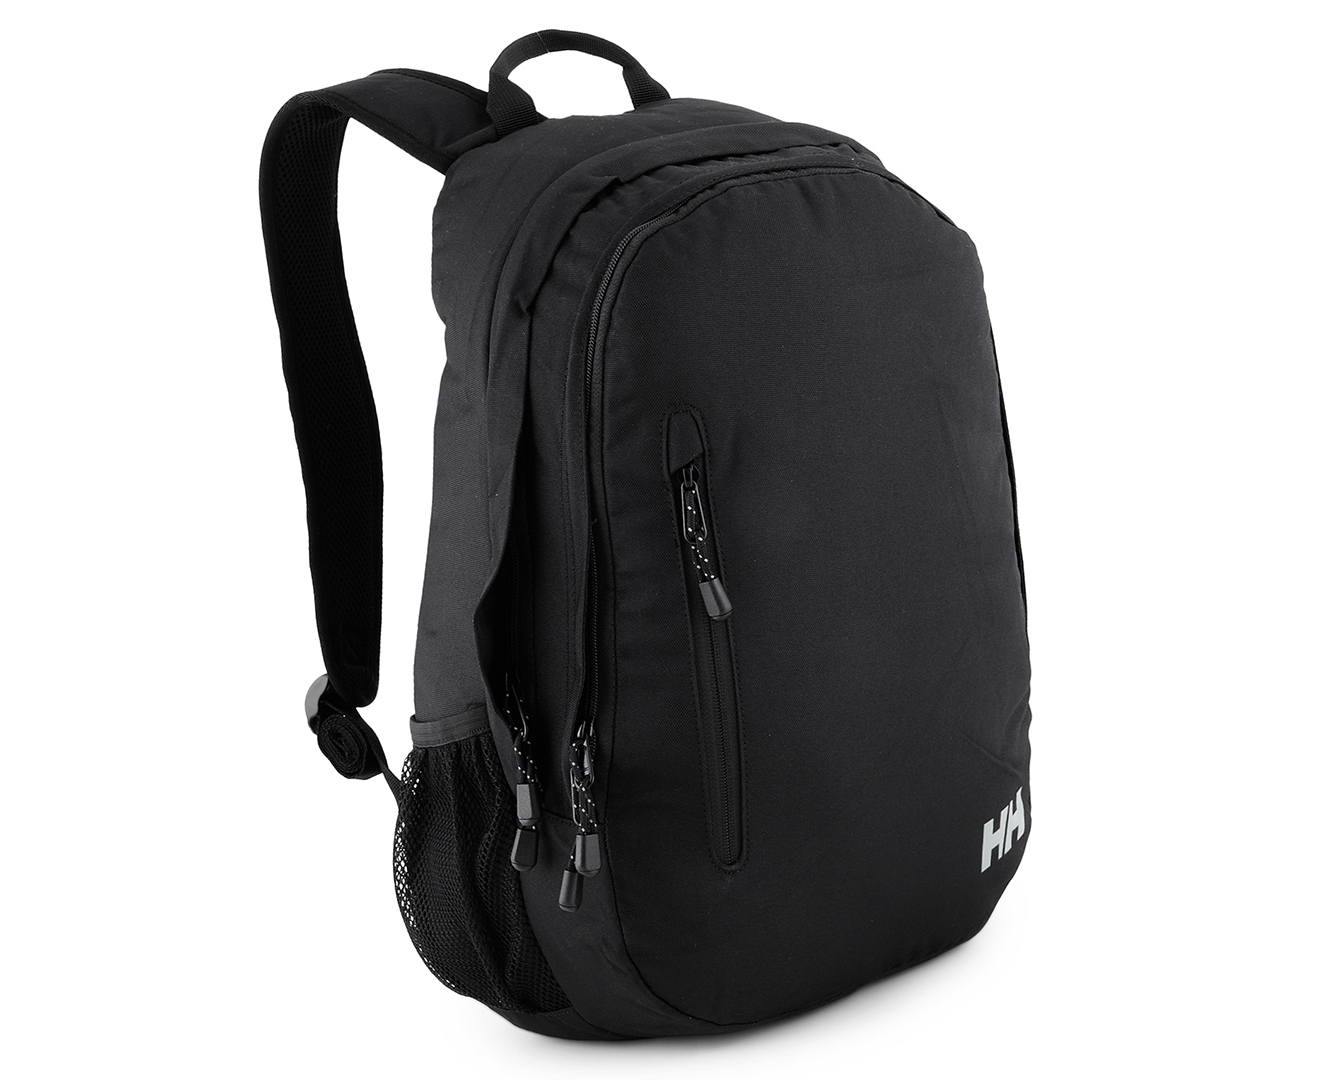 Helly Hansen HH Dublin 2.0 Backpack - Black | Catch.com.au